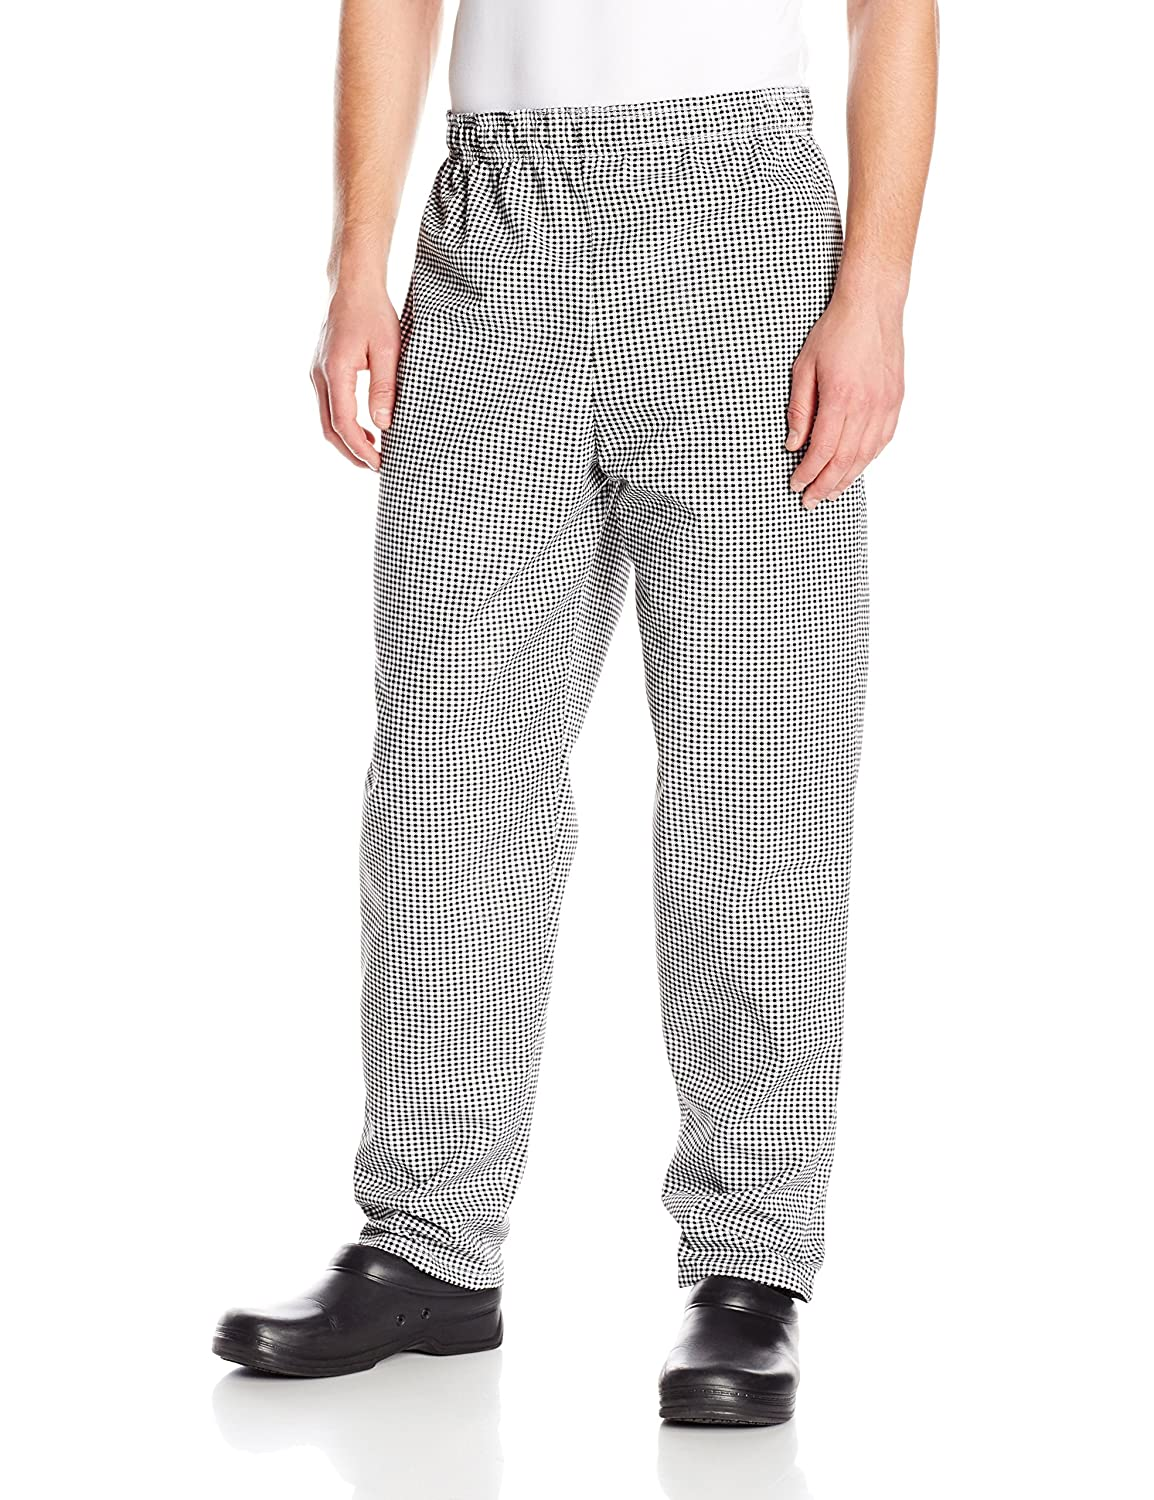 Chef Designs Men's Baggy Chef Pant 5360